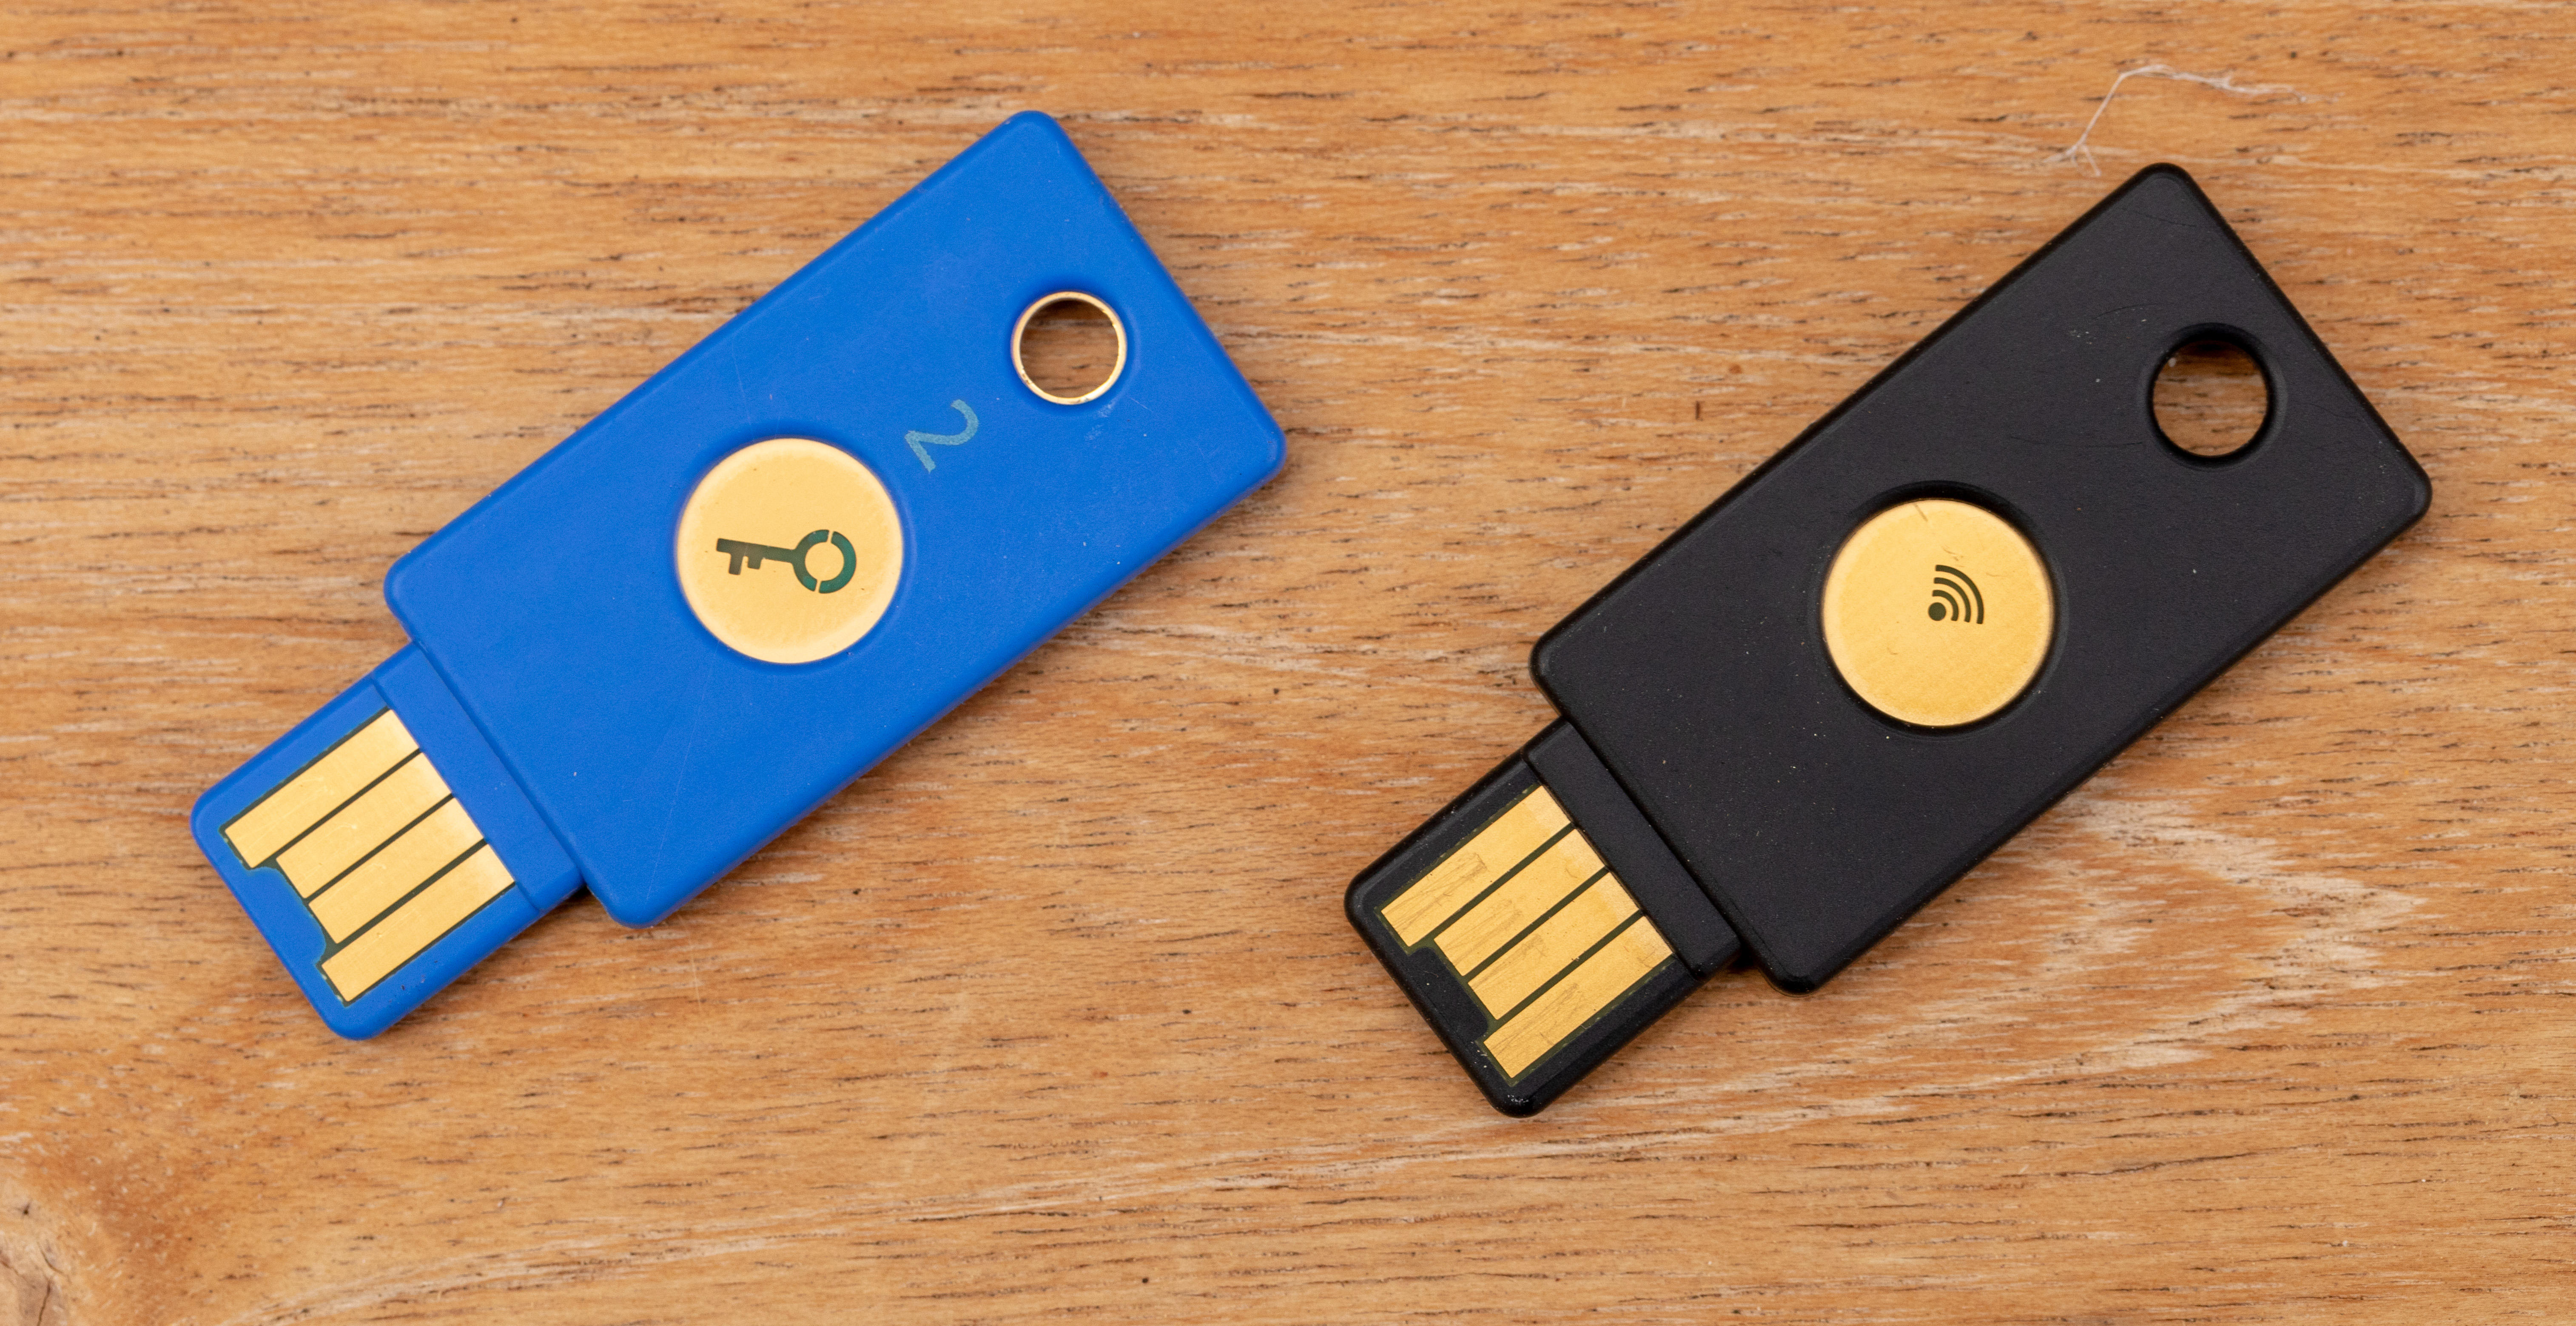 Yubico's hardware security keys support let you log on without a password on sites, apps and devices that support the FIDO2 authentication technology.